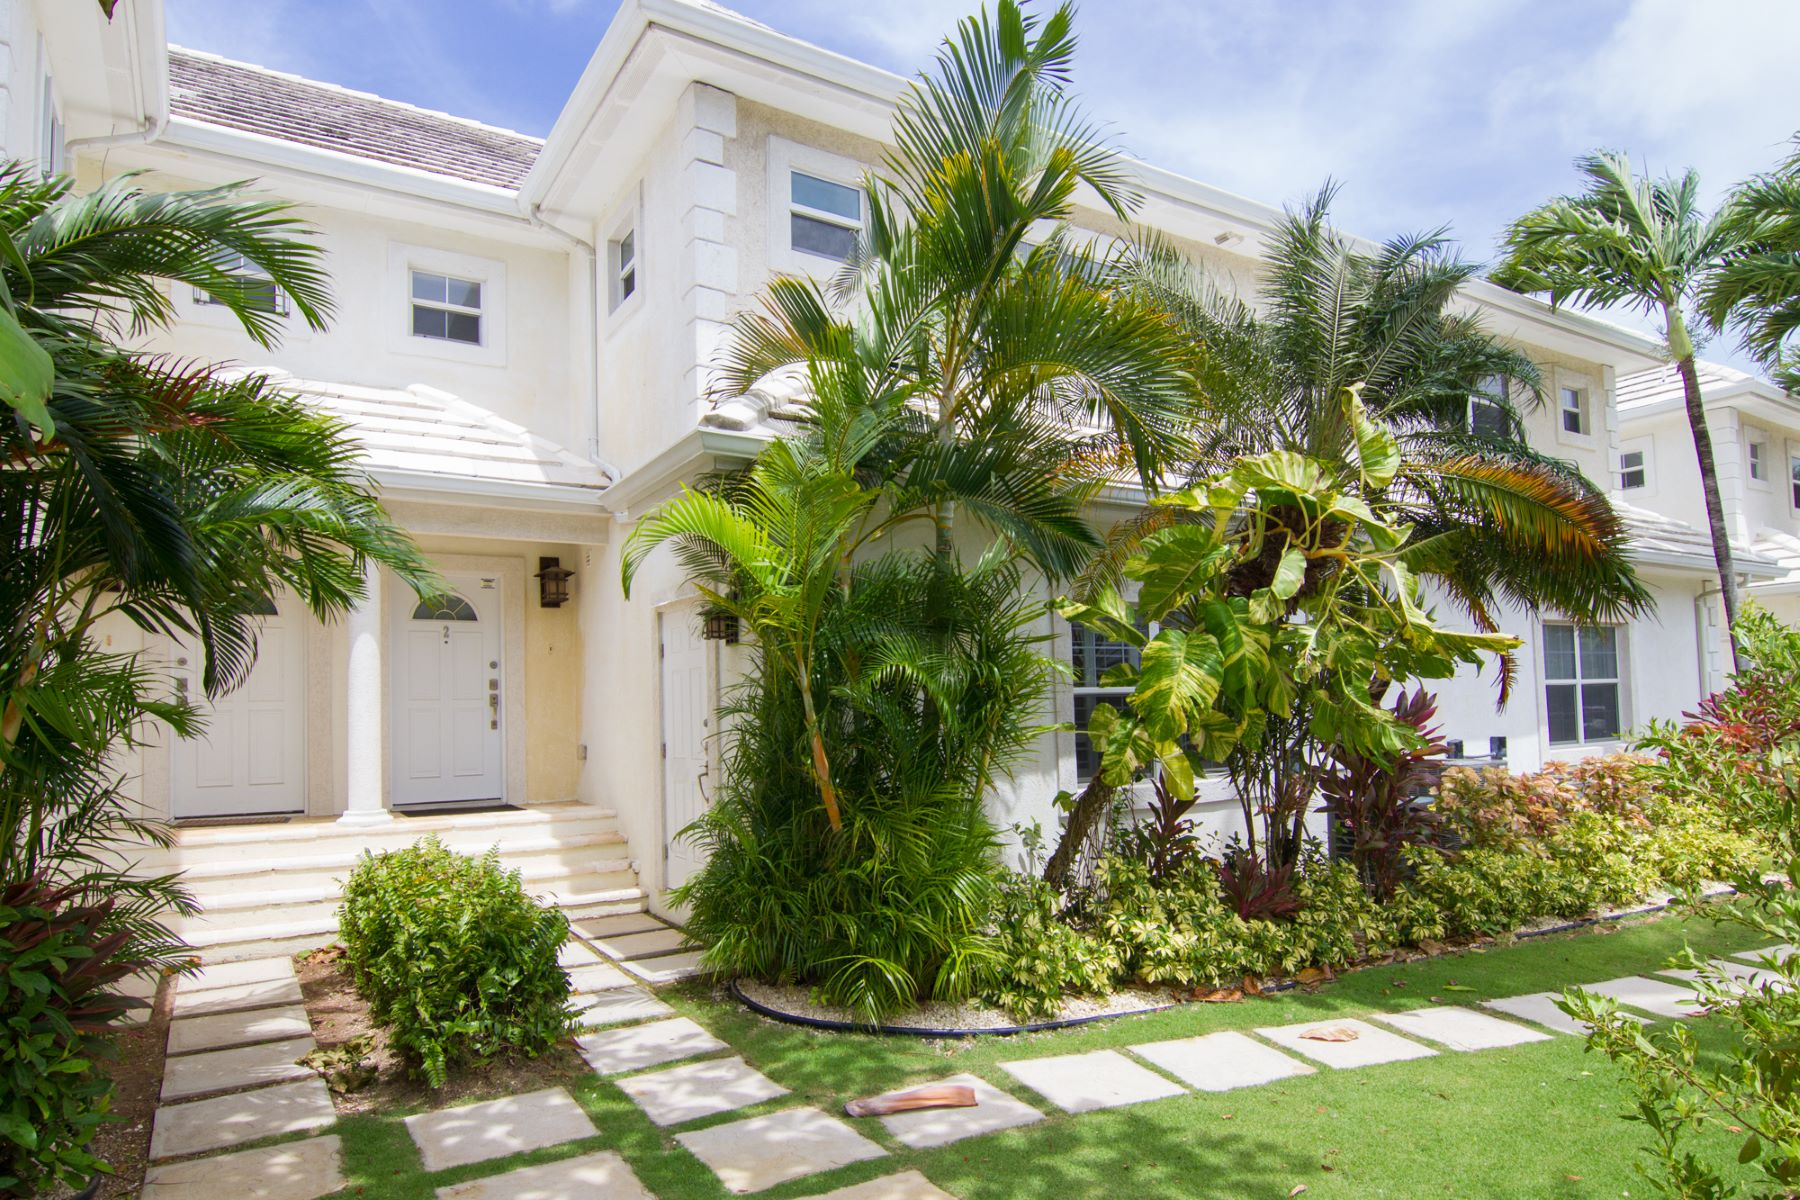 Townhouse for Sale at Coco Walk South Sound, Cayman Islands